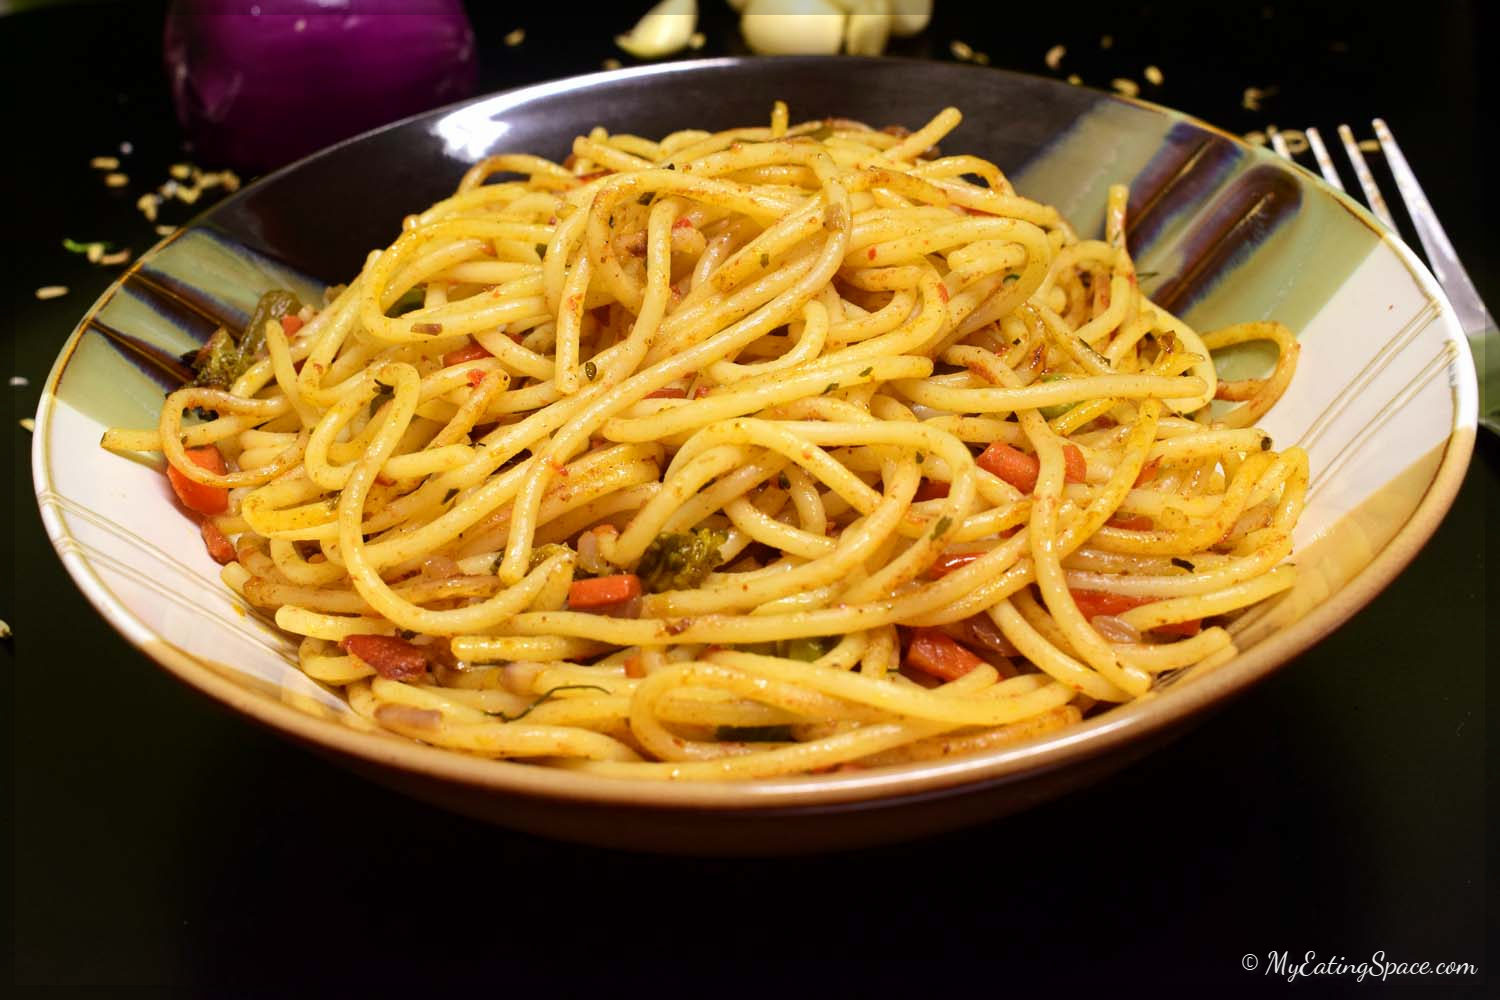 Healthy and easy vegetarian spaghetti recipe that can be prepared in just 30 minutes. The dish is purely vegan. You can add any vegetables, fresh or frozen, to the recipe. They are also great for late night dinner preparations as they don't need any other accompanying dish. More recipes at myeatingspace.com